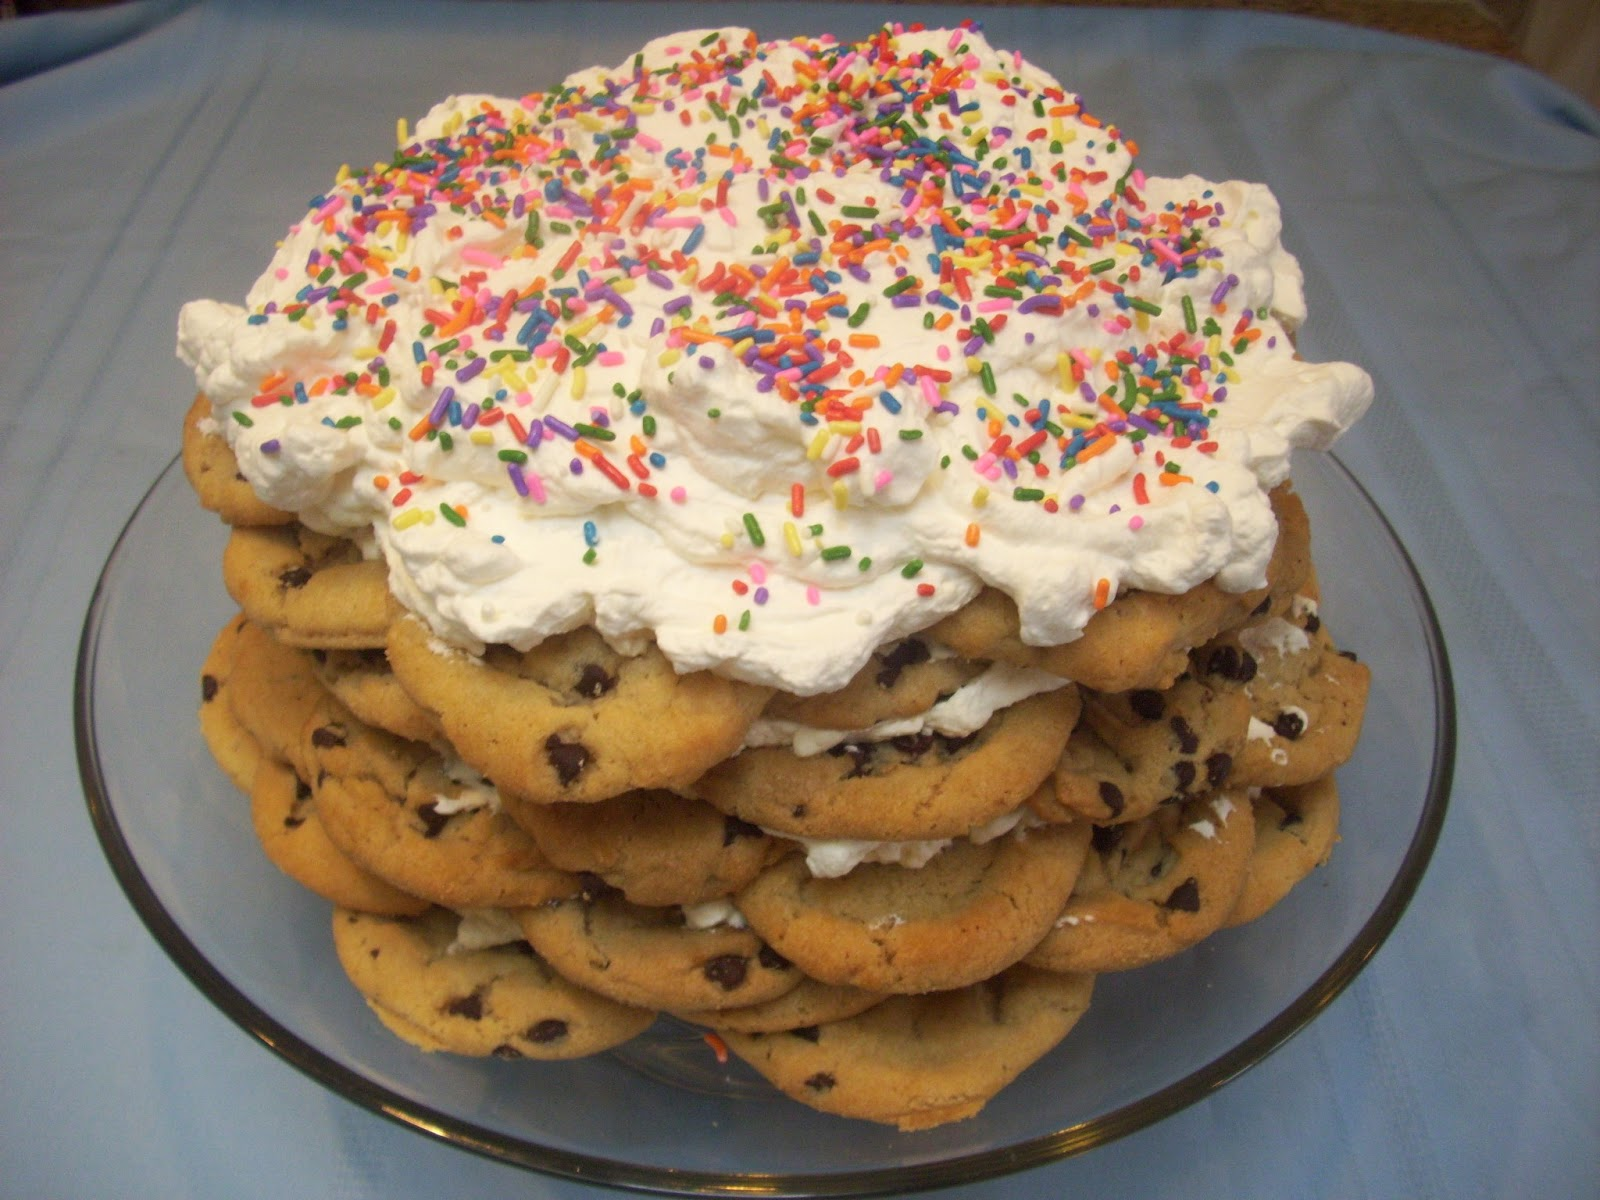 Flavors by Four: Chocolate Chip Cookie Icebox Cake